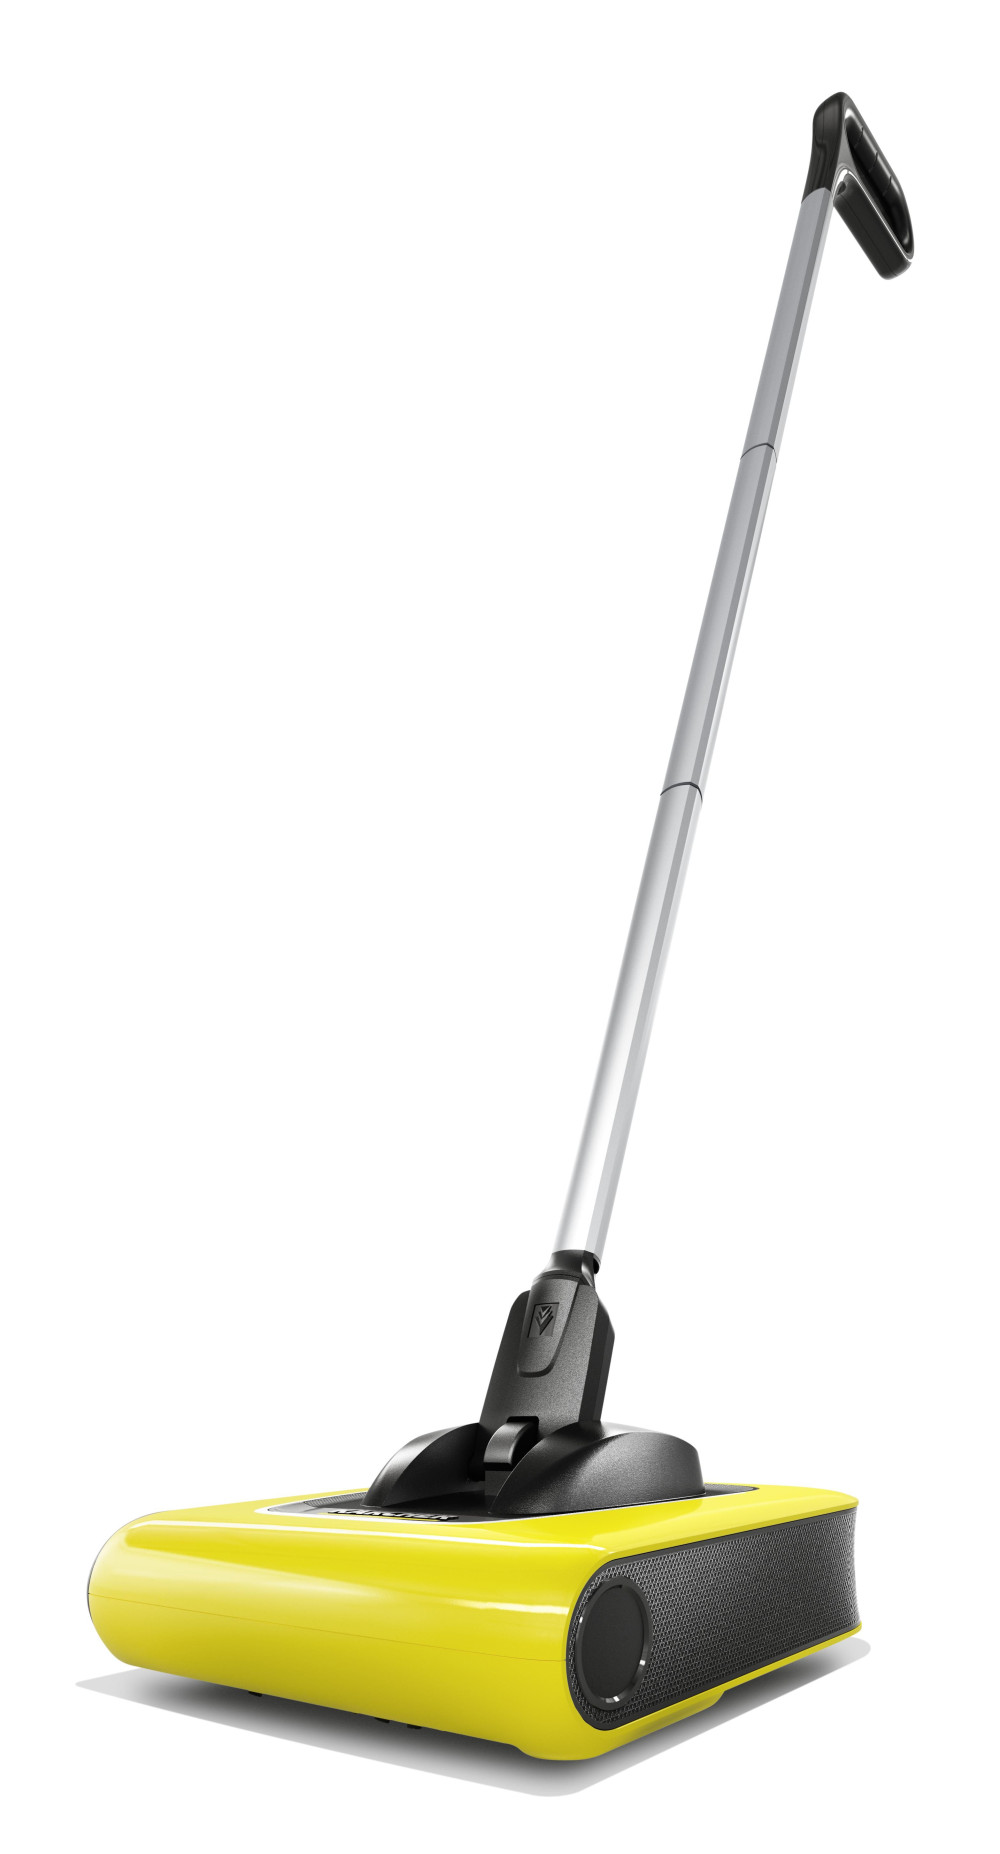 Kärcher KB5 Cordless Sweeper featured image